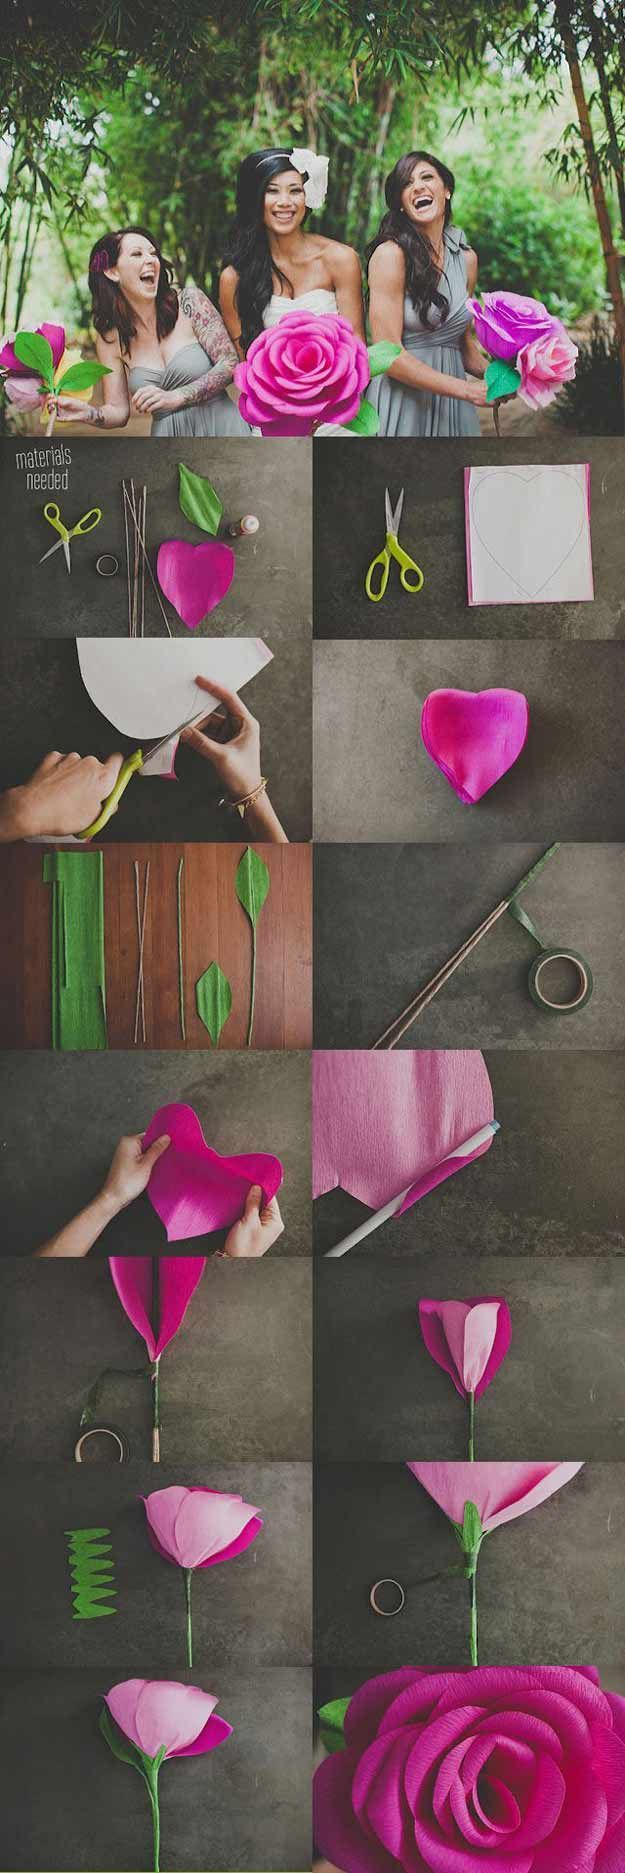 Cool diy photo booth props diy photo booth props diy photo diy giant paper rose flower this is a differentinteresting wedding bouquet idea i wonder if it would be cheaper than real flowers dhlflorist Images